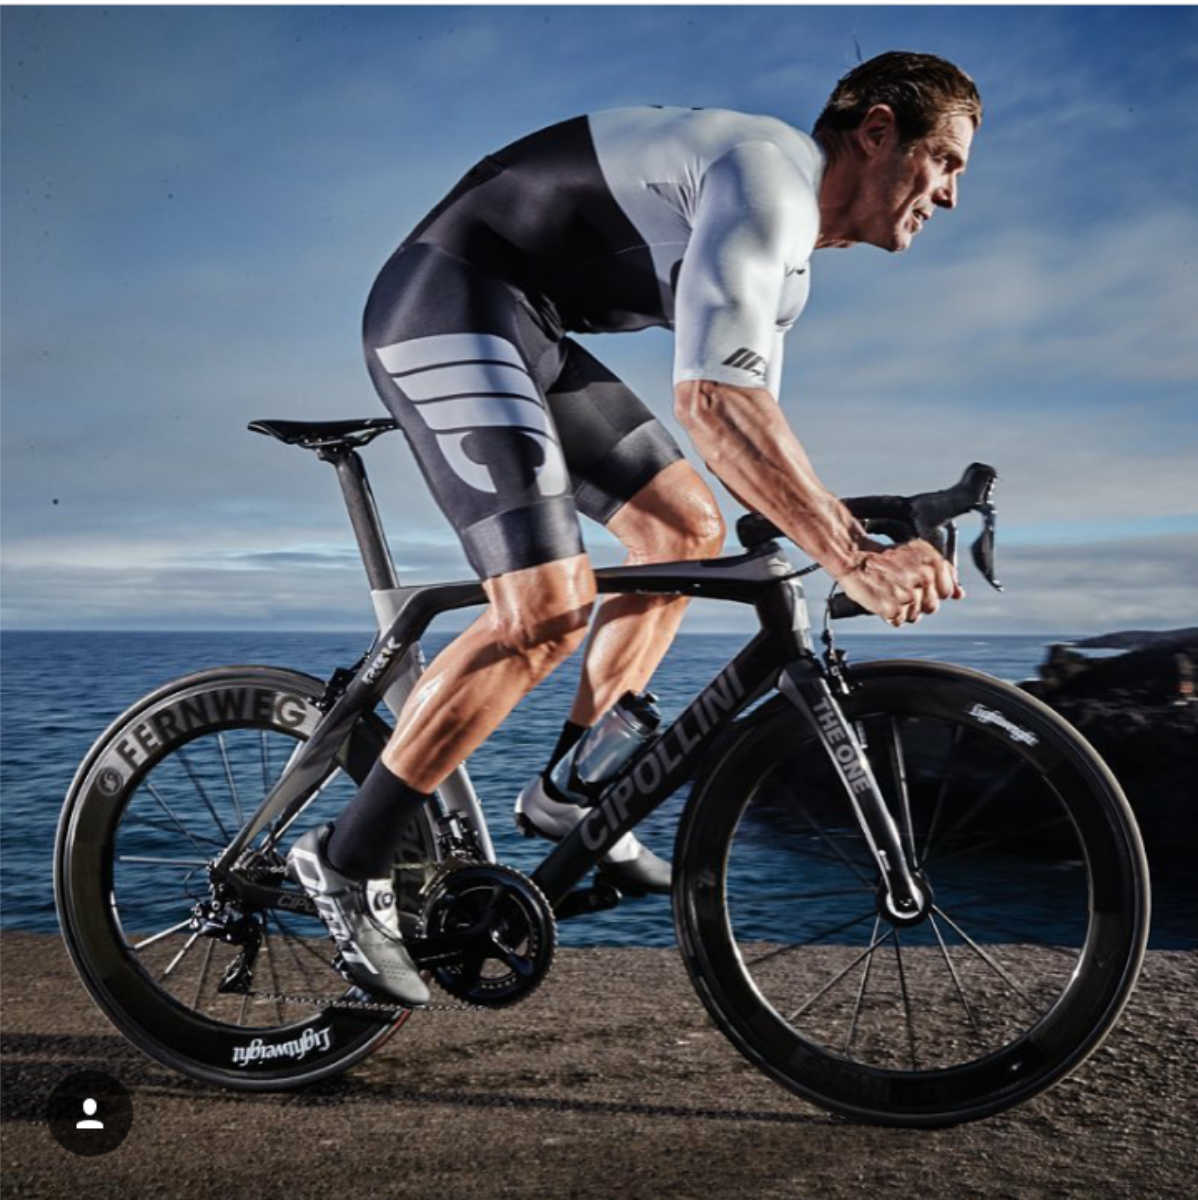 Mcipollini RB1K Campaing 03